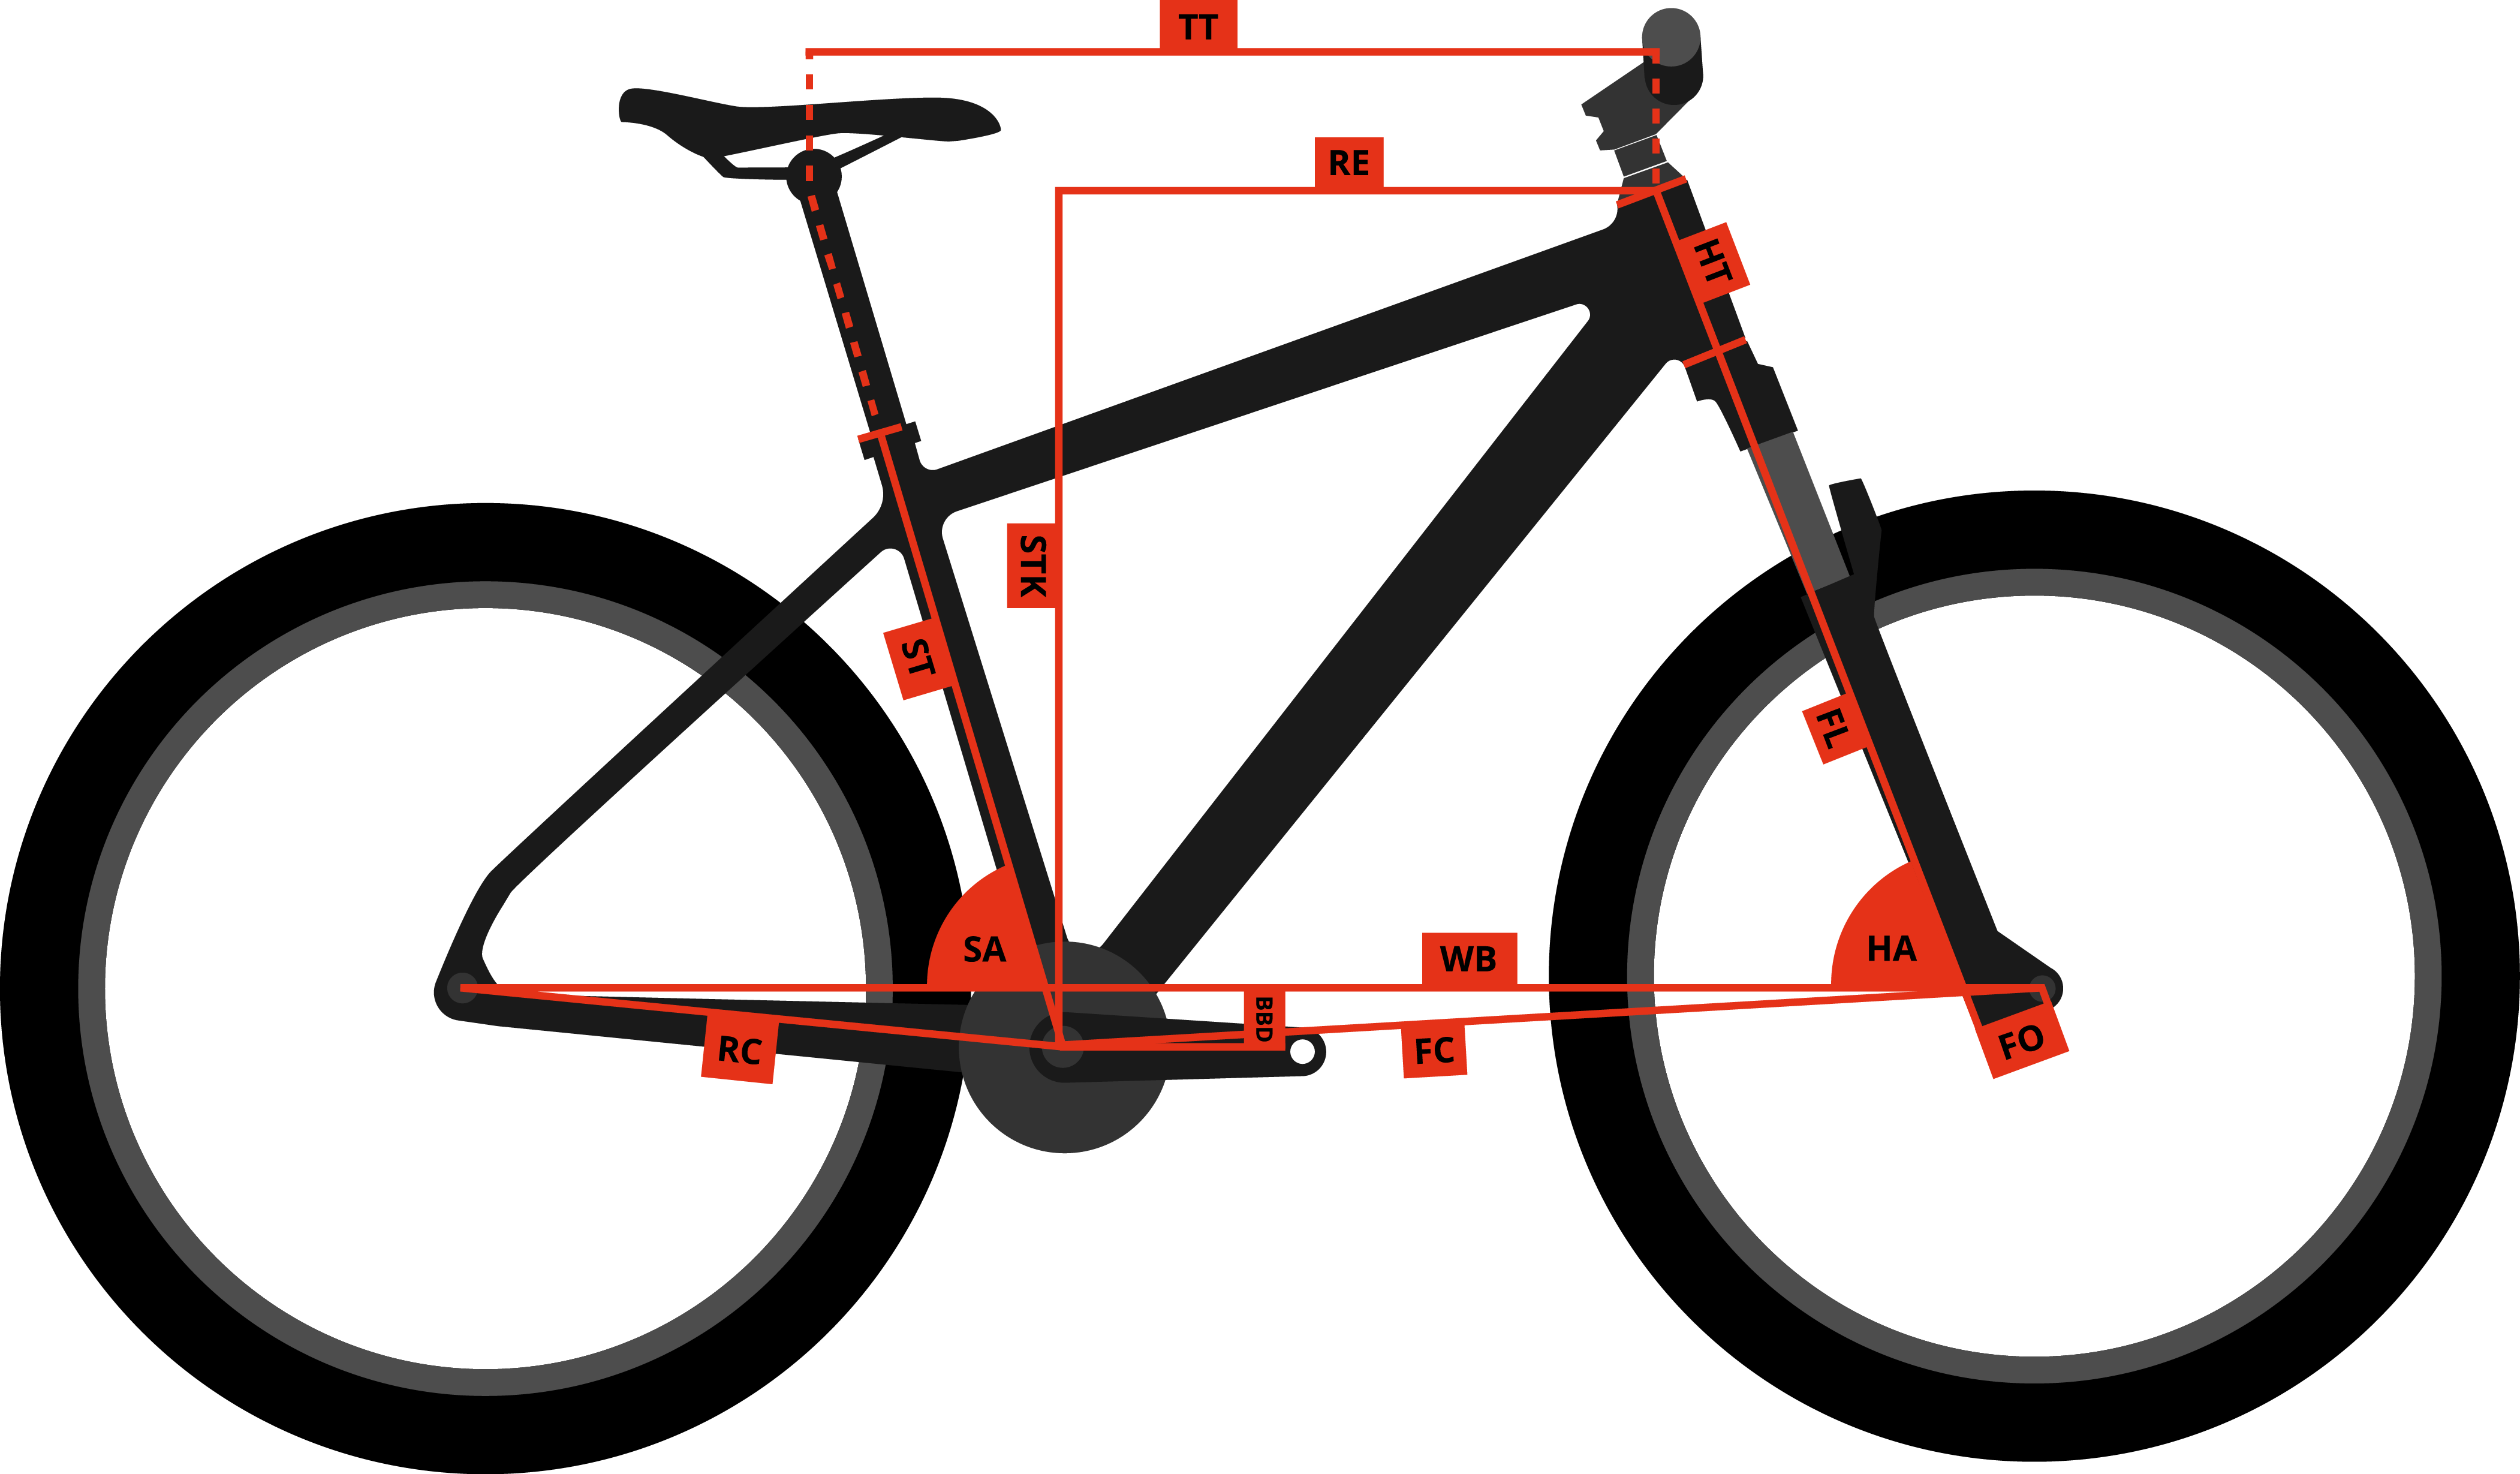 Bike diagram